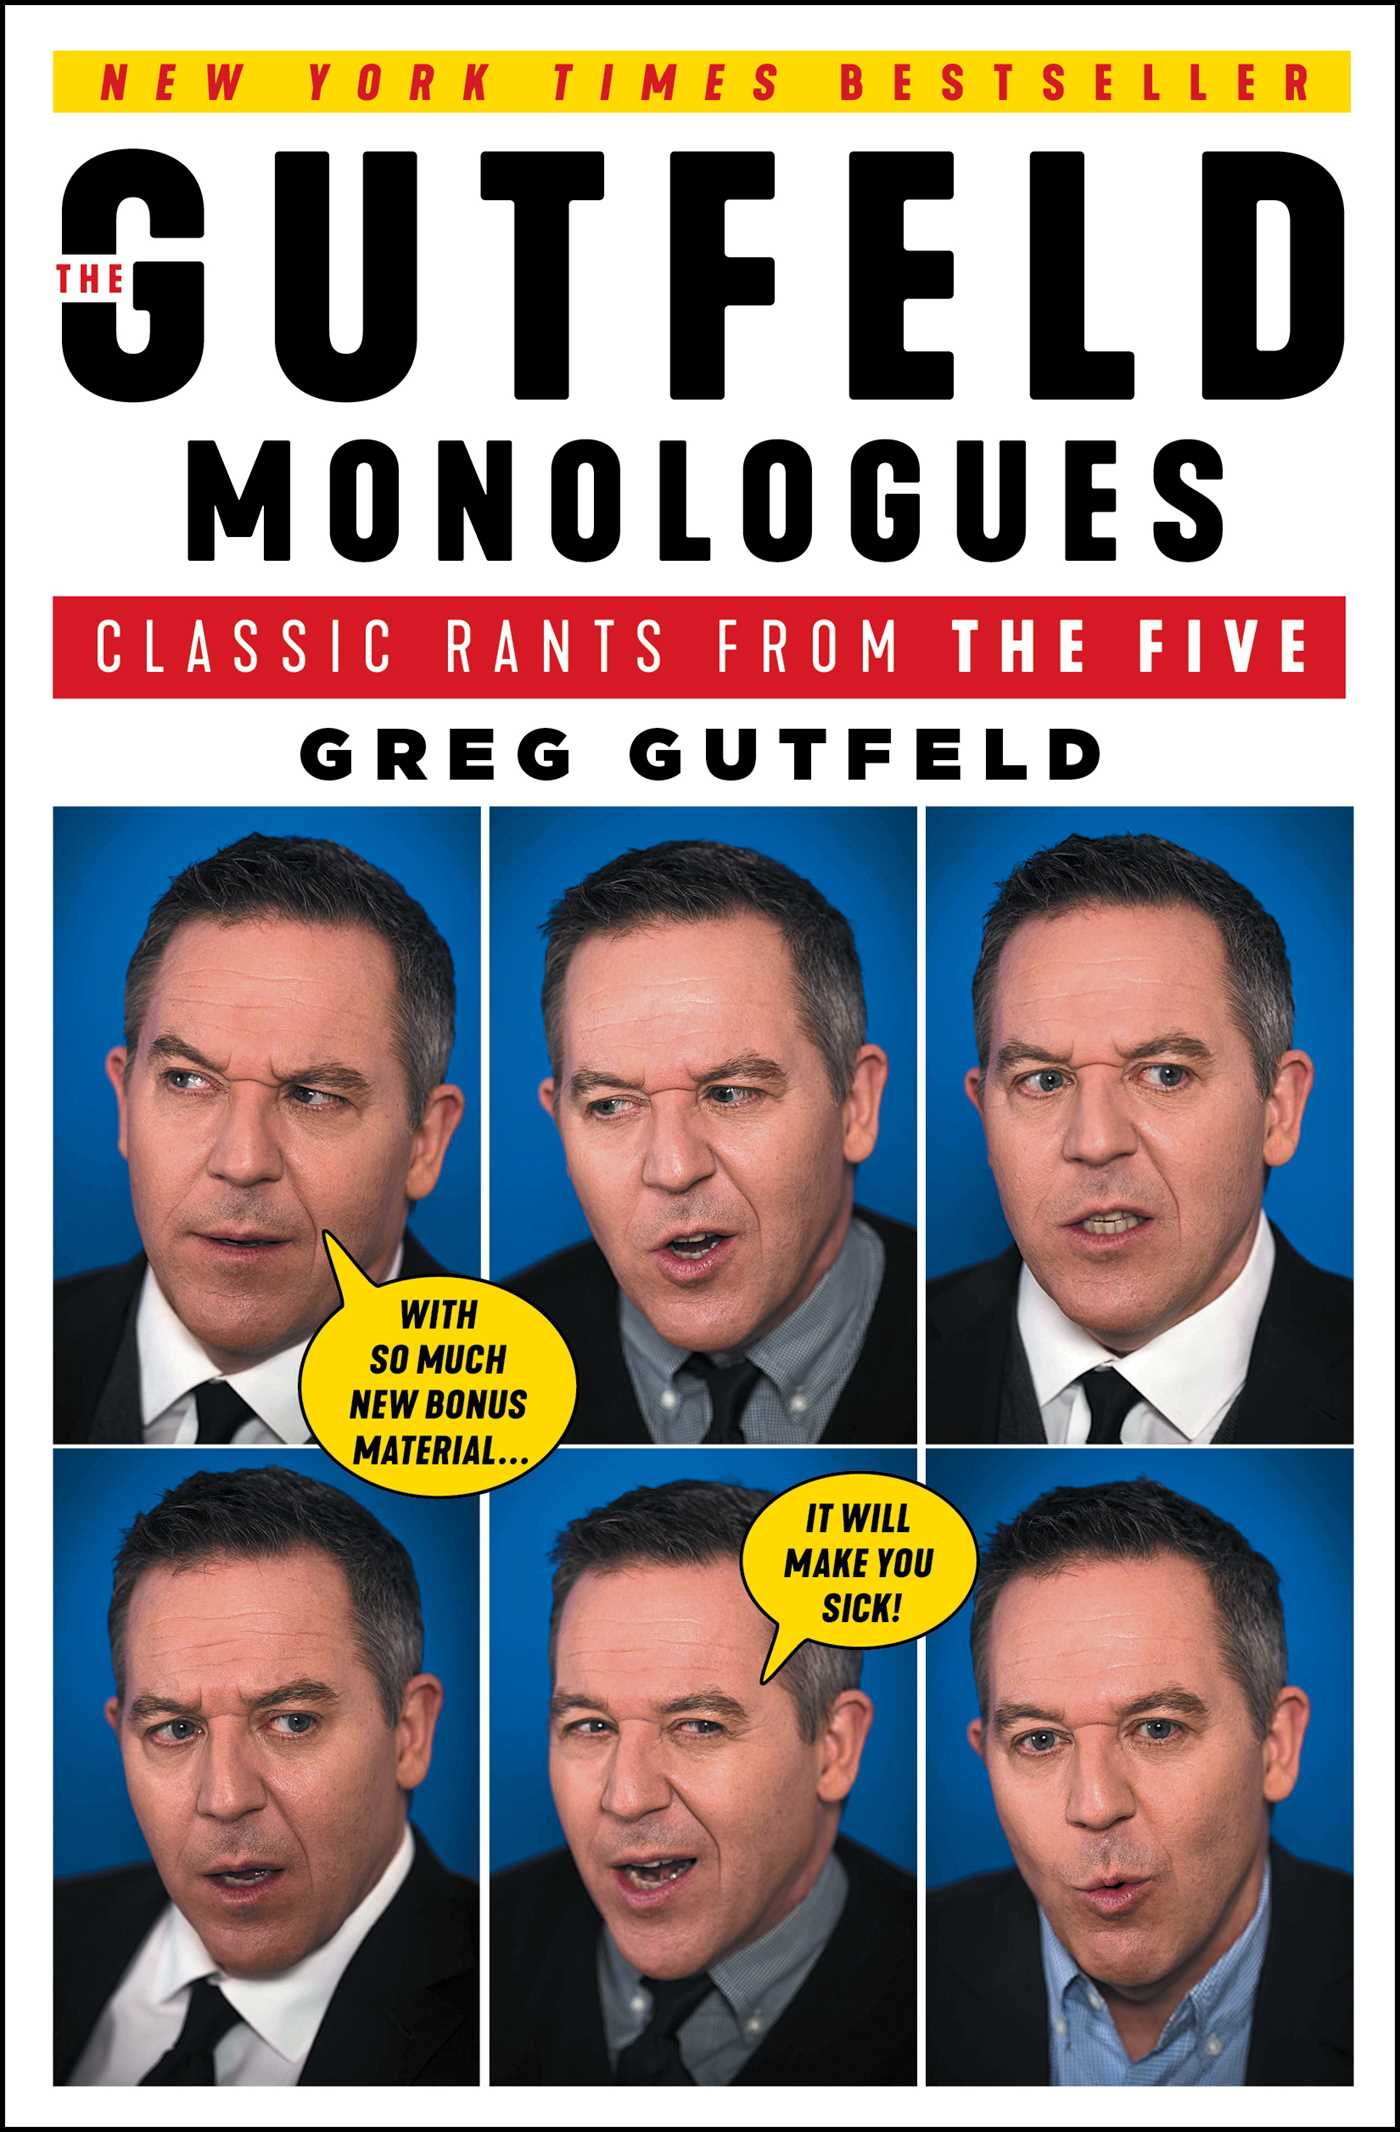 The gutfeld monologues 9781501190742 hr